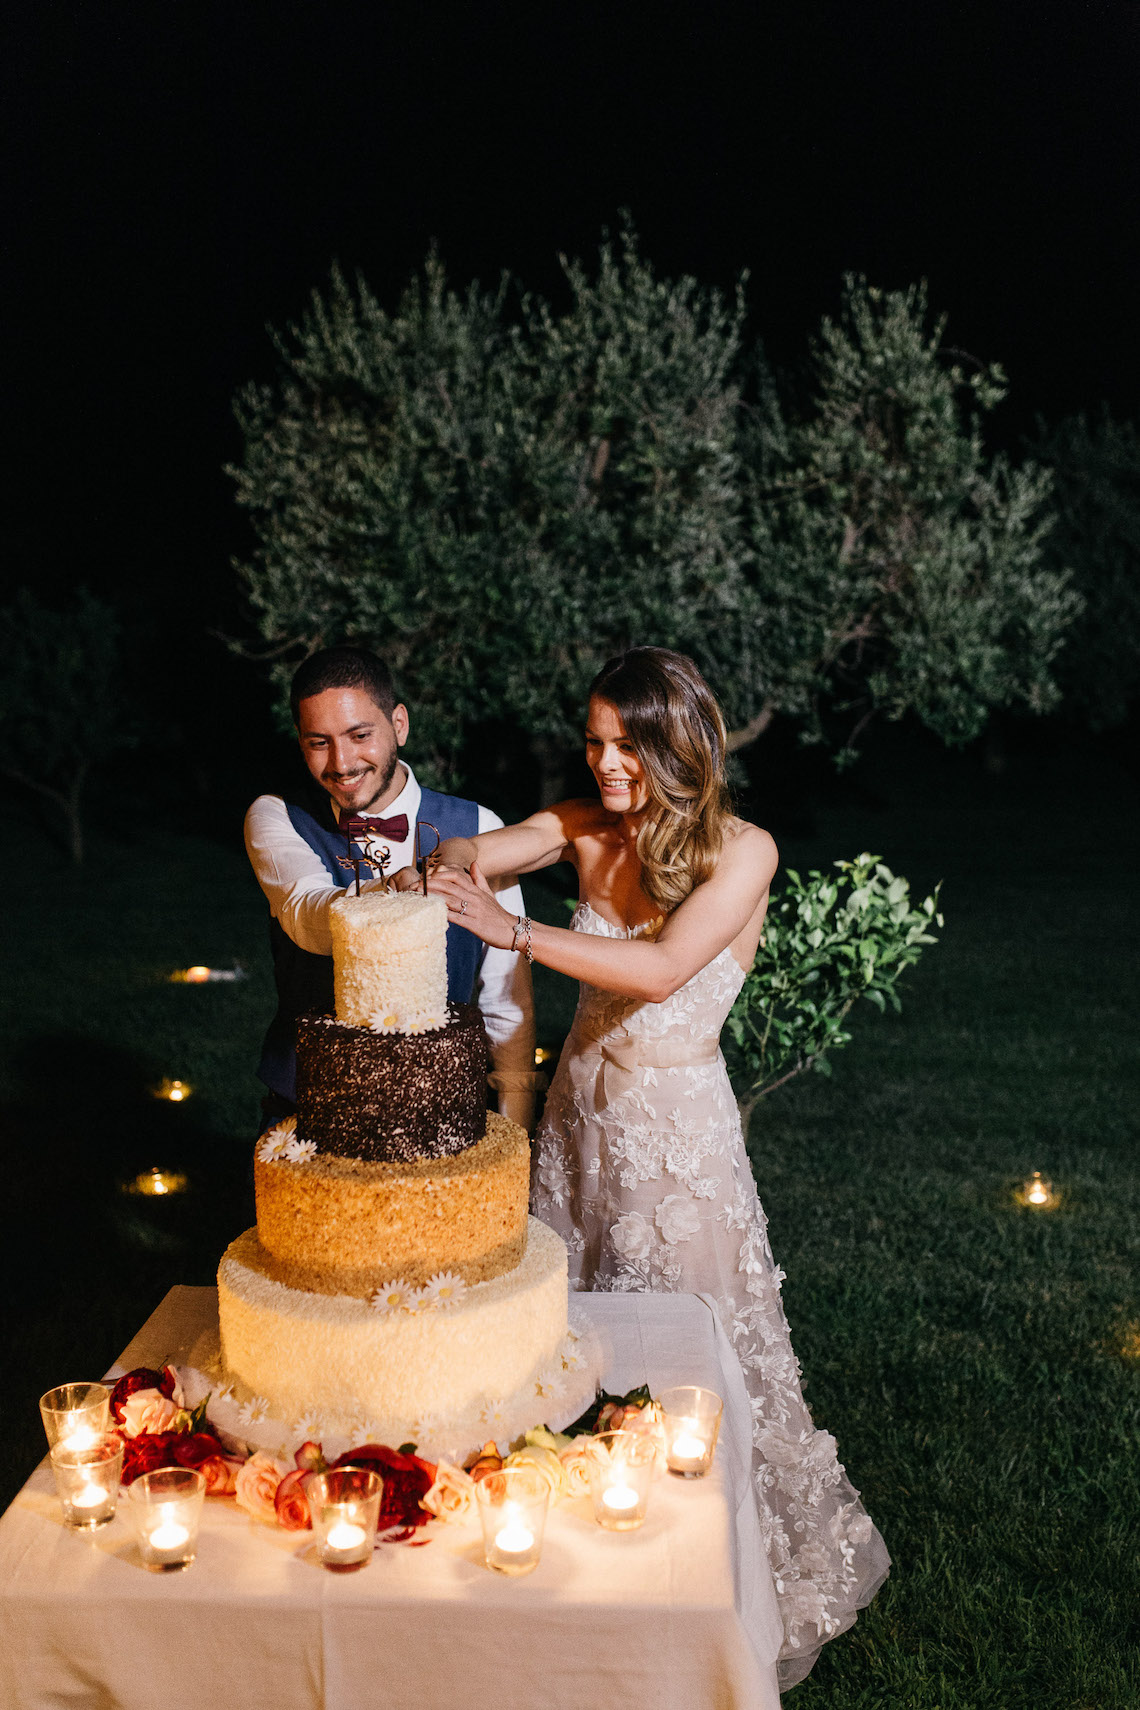 Modern & Stylish Destination Wedding In Italy | Stefano Stantucci 54